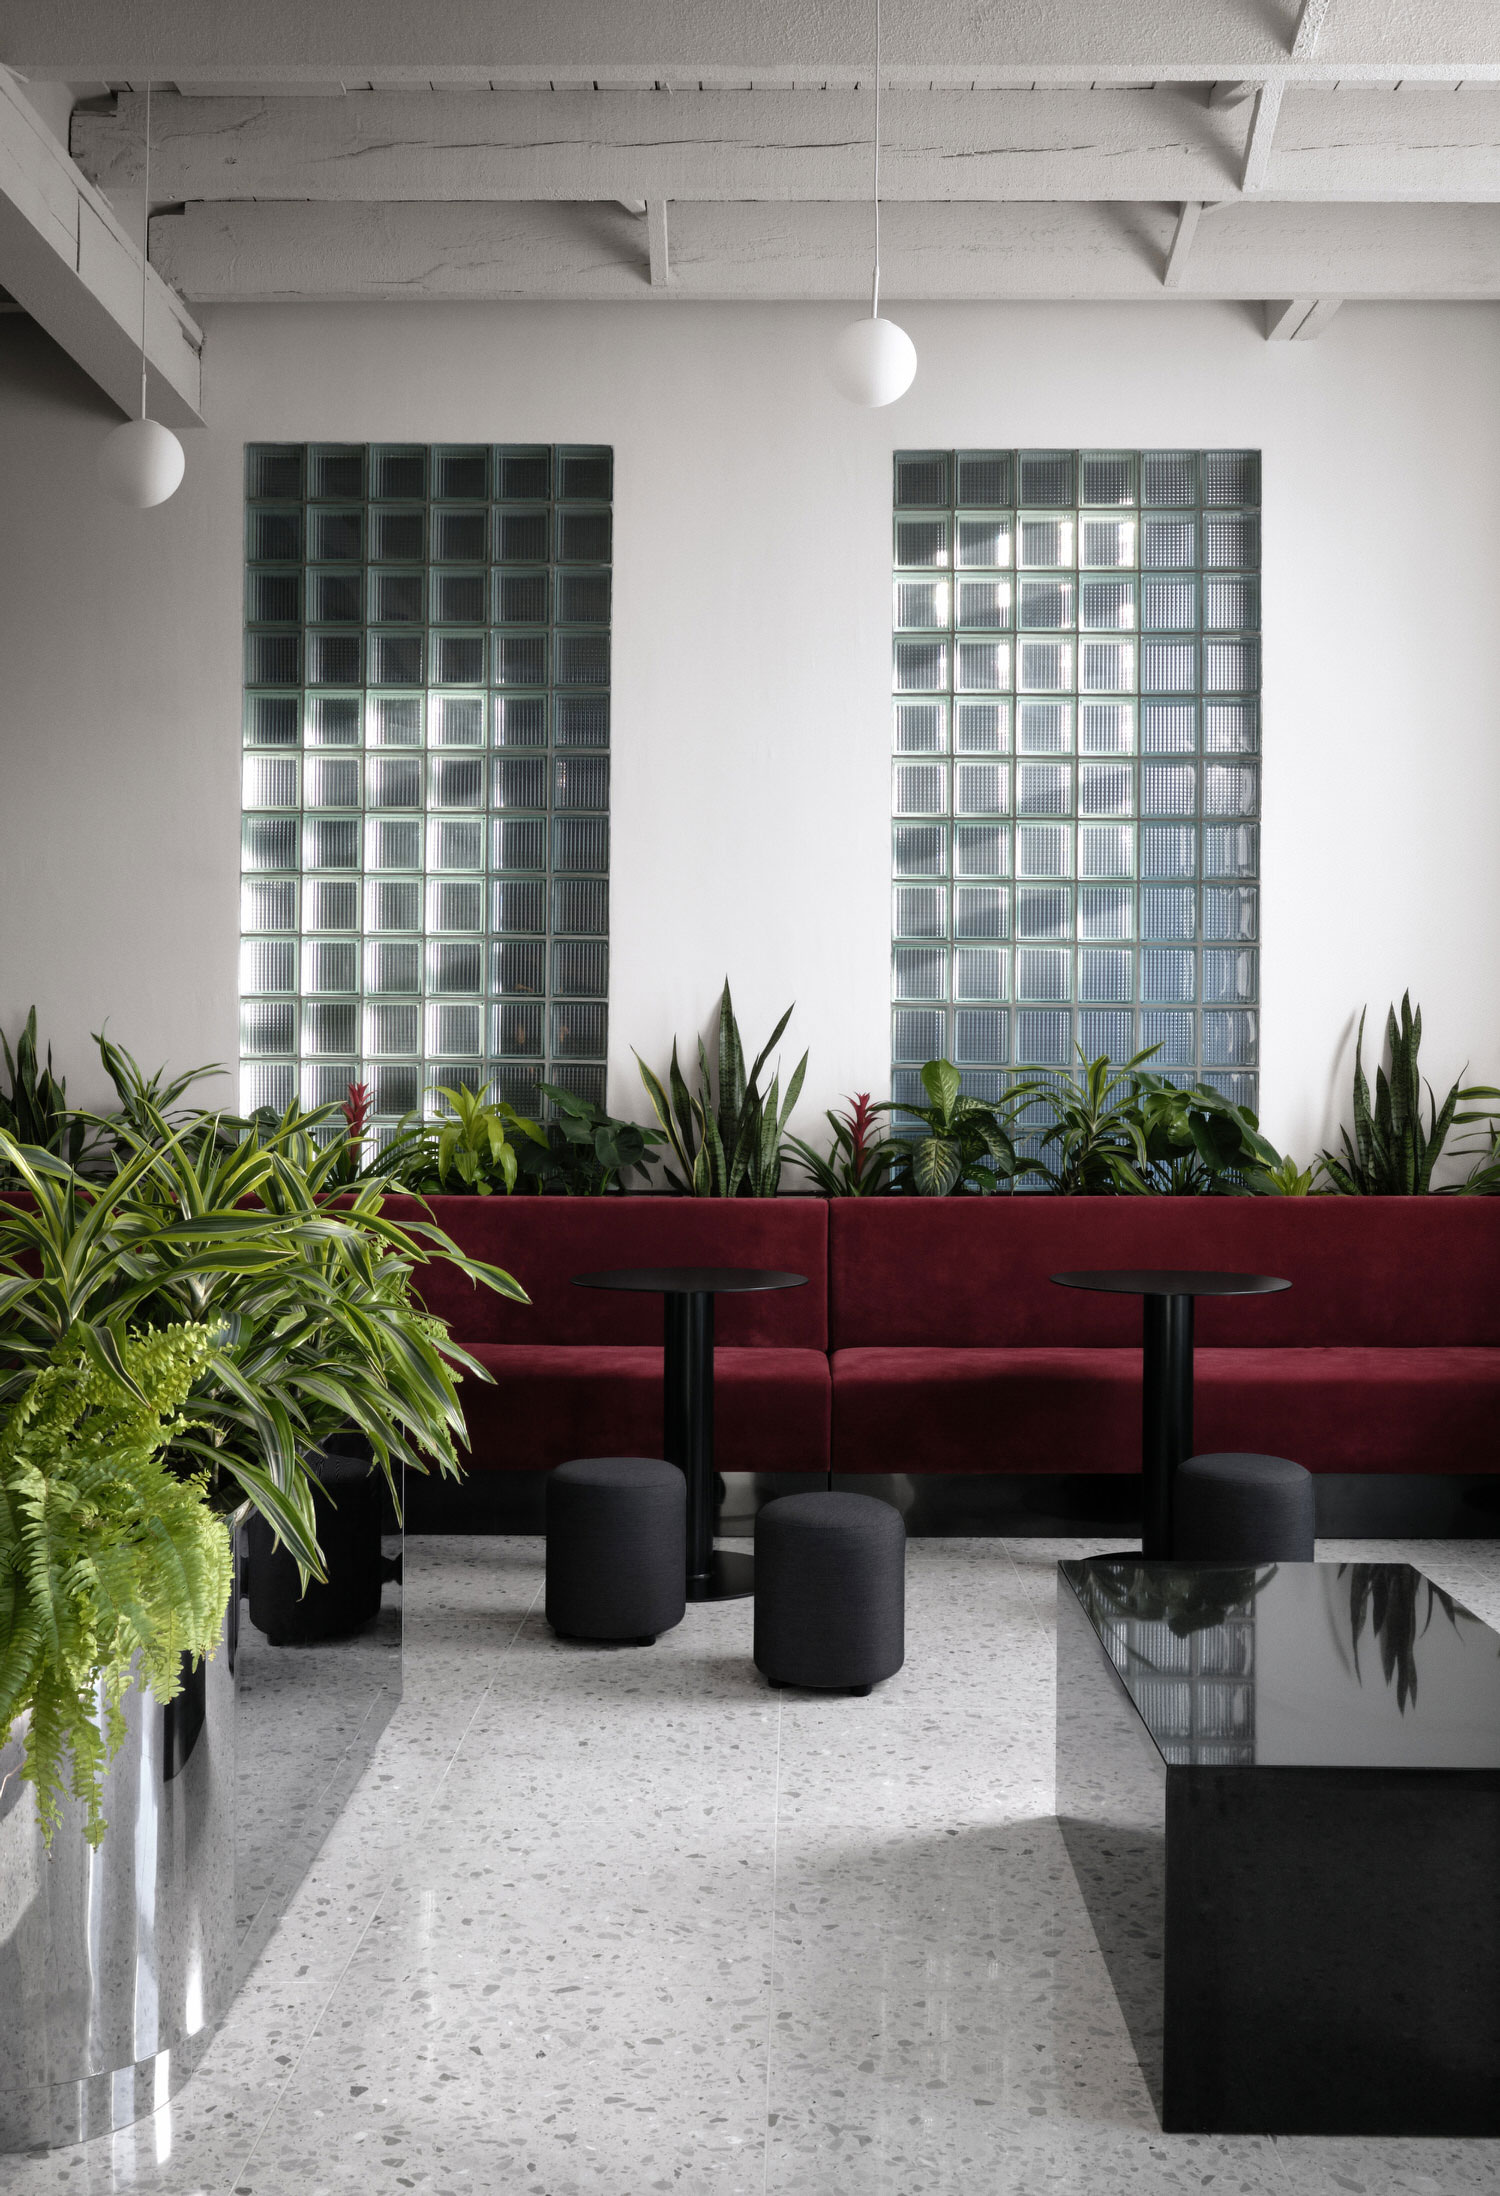 Ivy Studio Spacial Coworking Office Montreal Photo Alex Lesage Yellowtrace 04